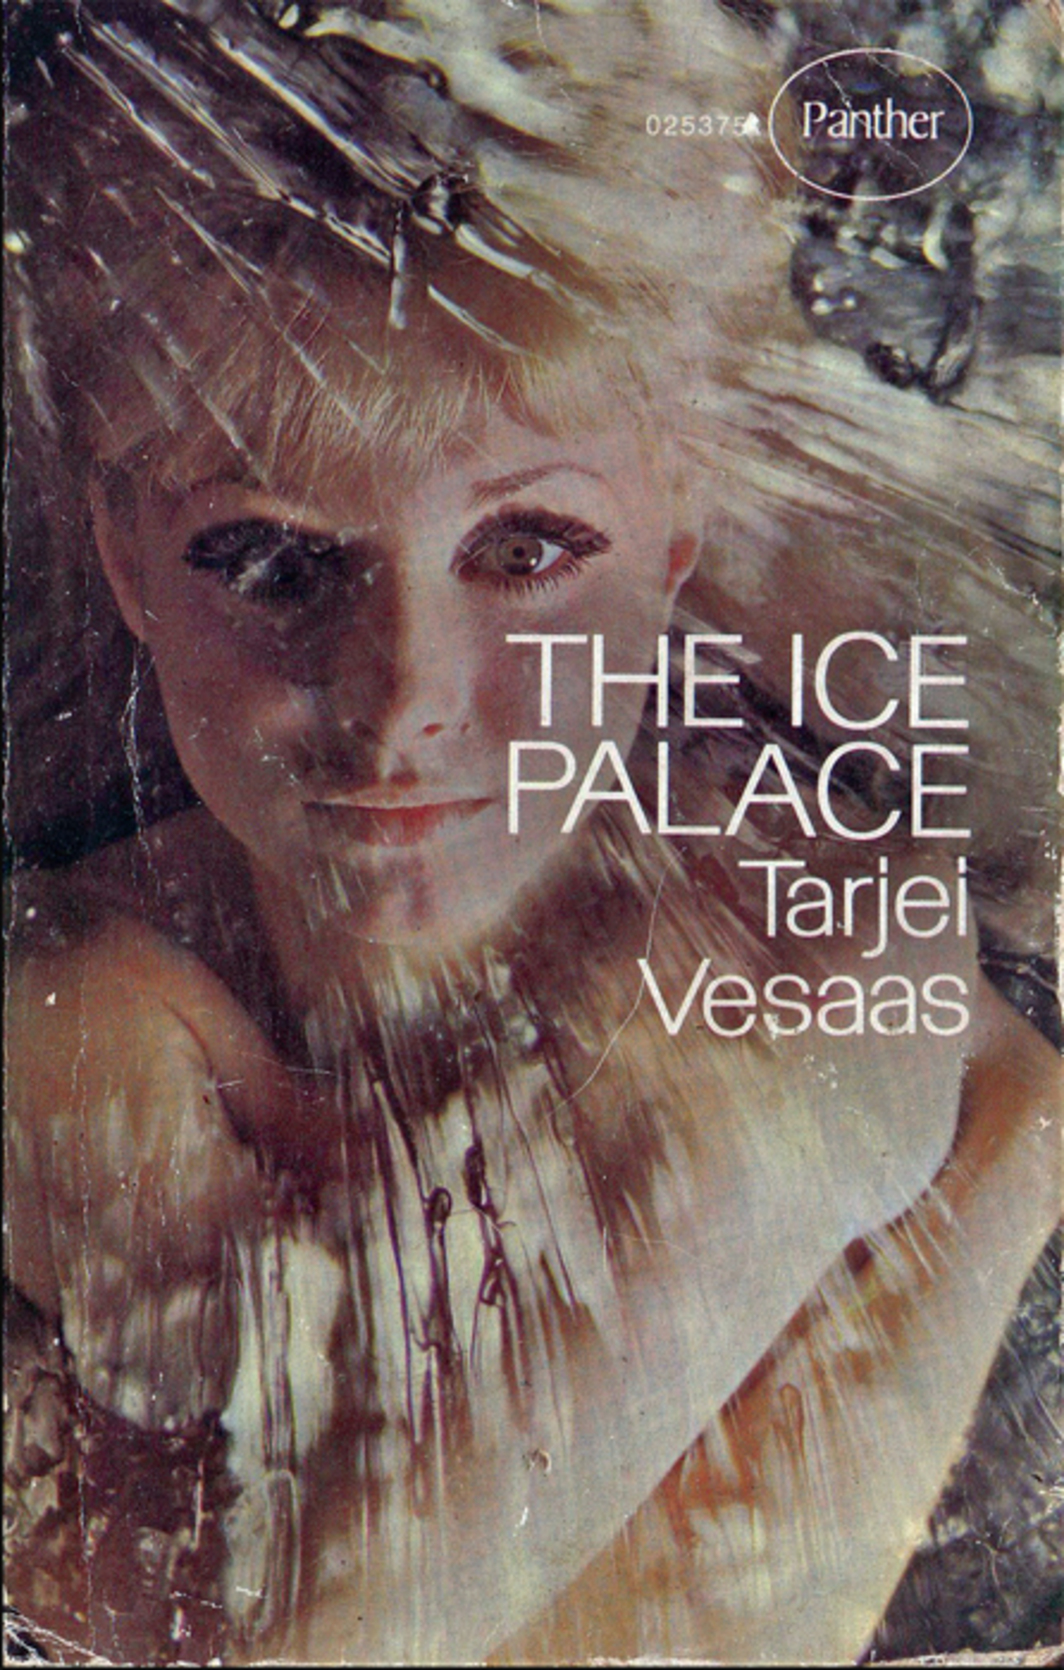 *Cover of the Panther 1968 edition of Tarjei Vasaas's The Ice Palace.*